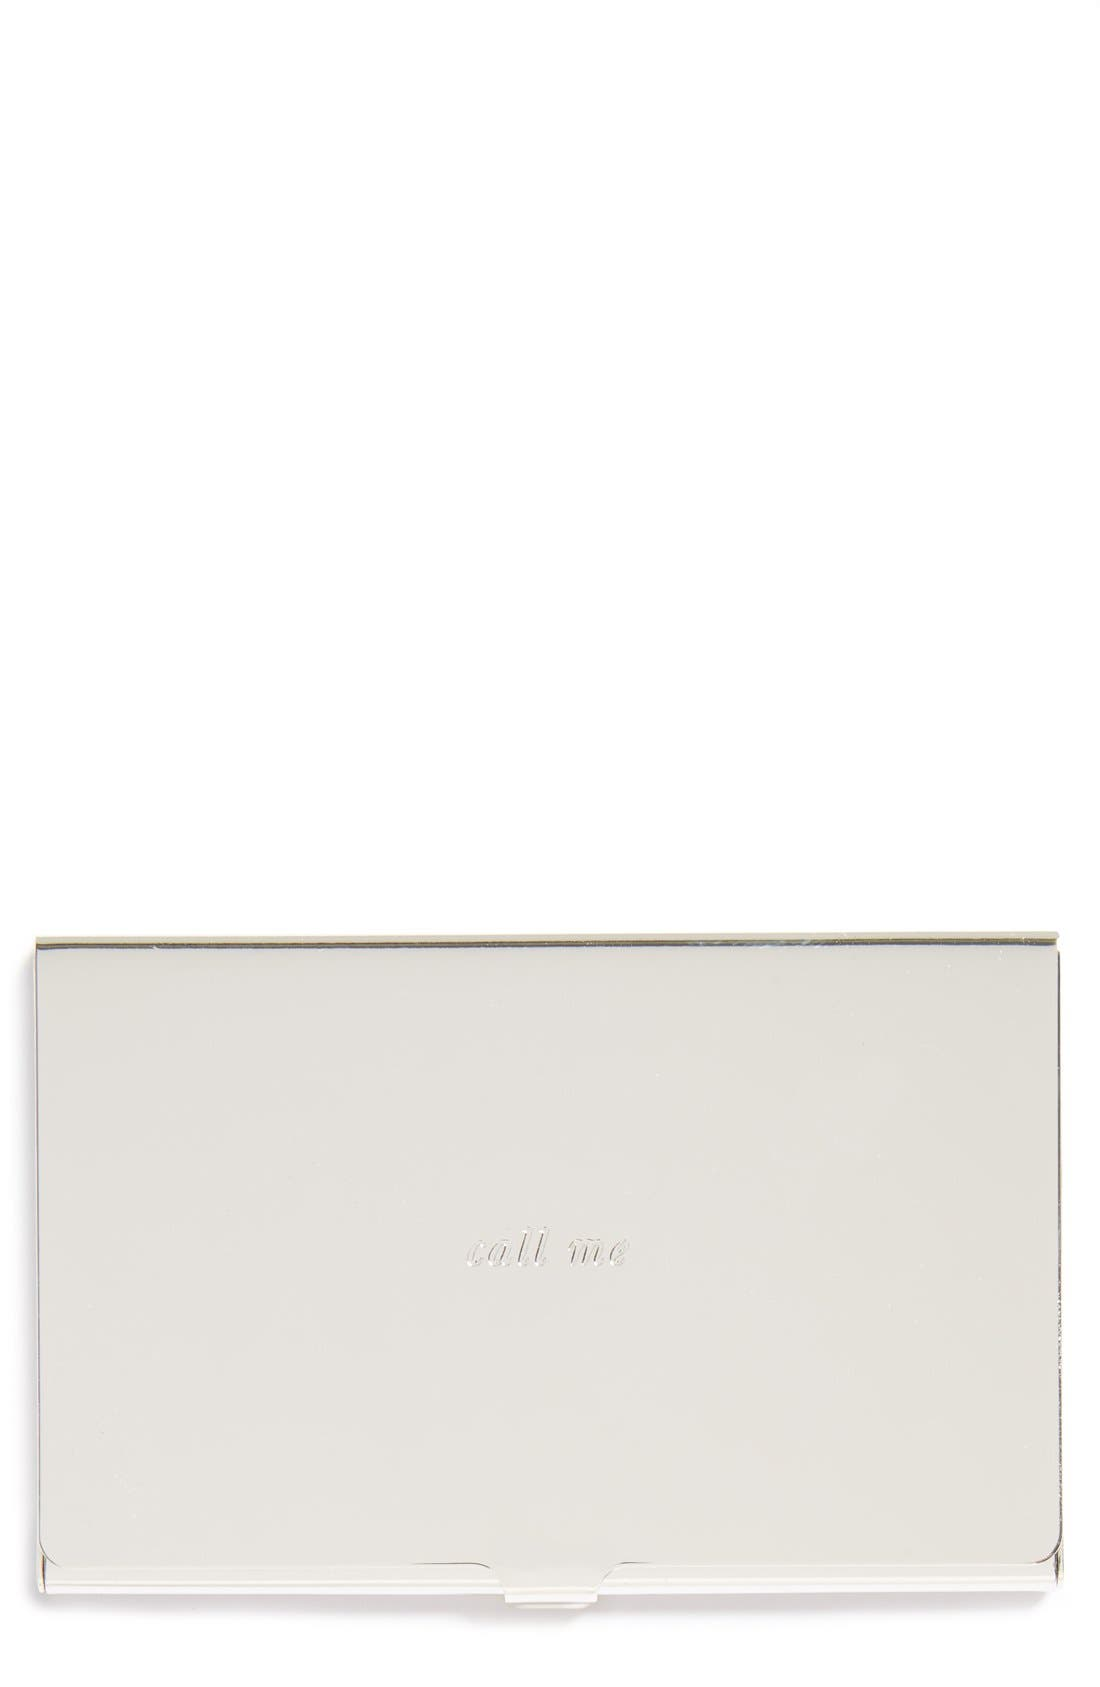 Alternate Image 1 Selected - kate spade new york 'call me' business card holder